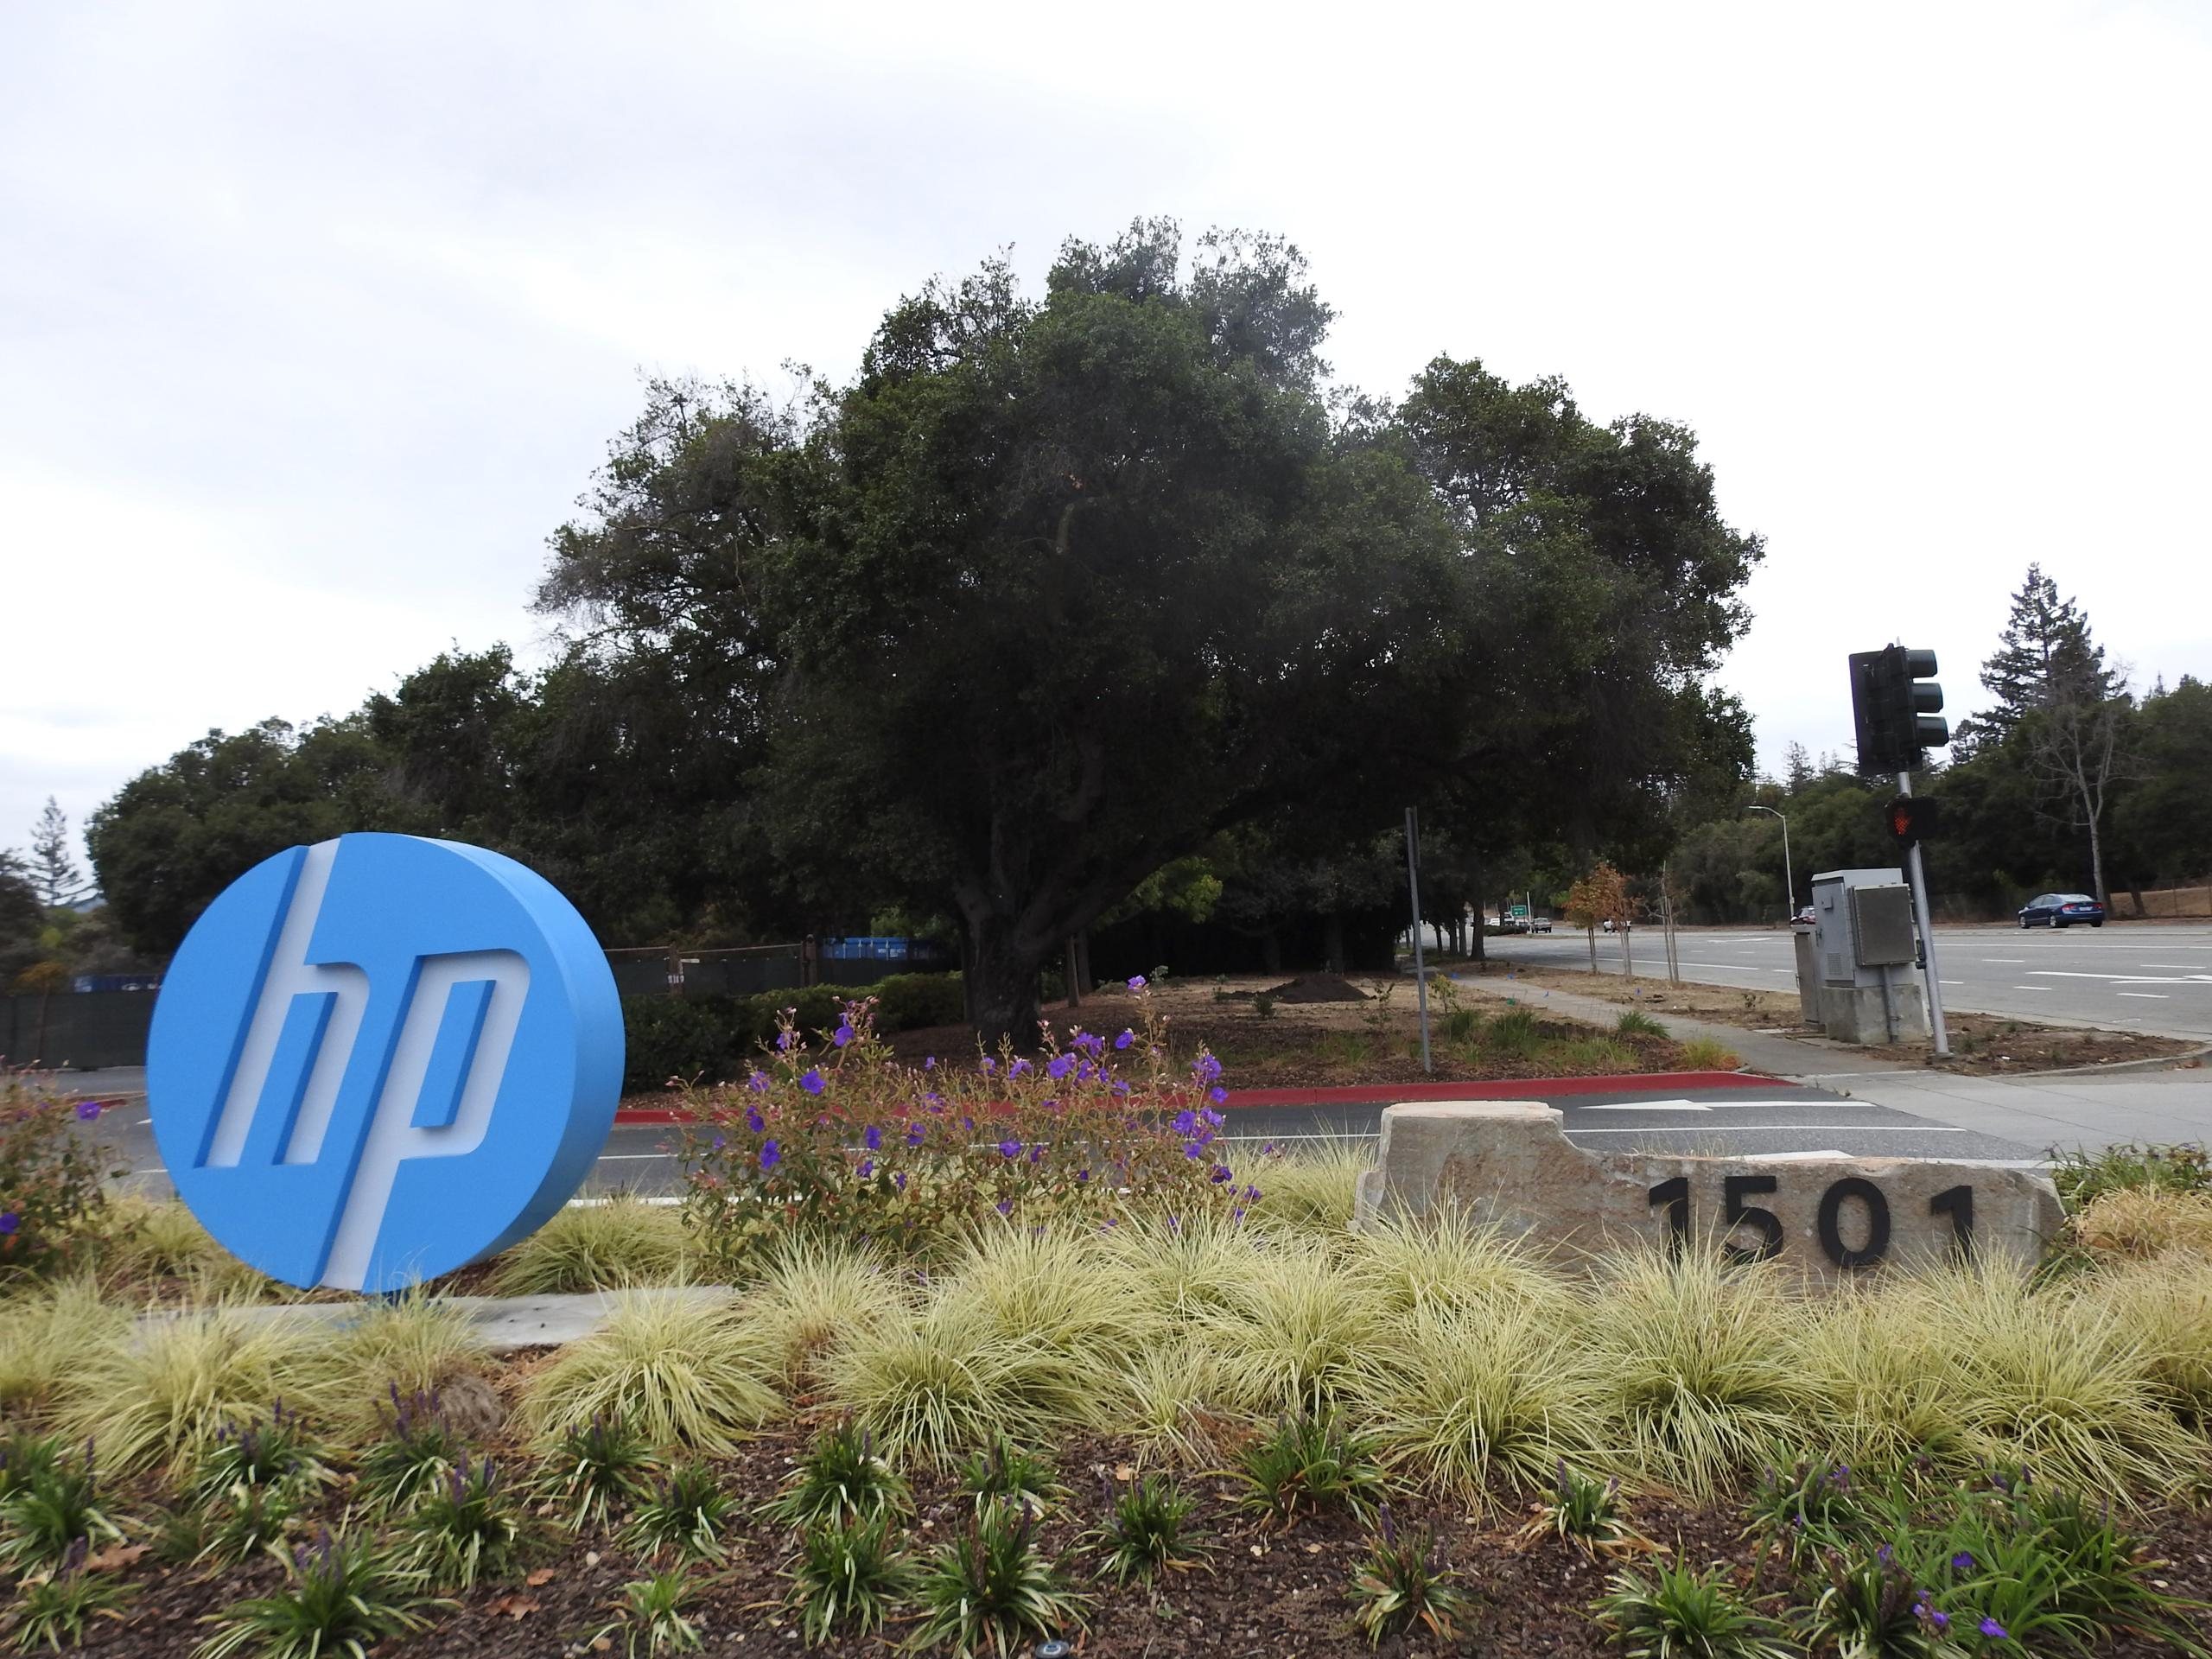 Entrance to HP's corporate headquarters in Palo Alto, California.